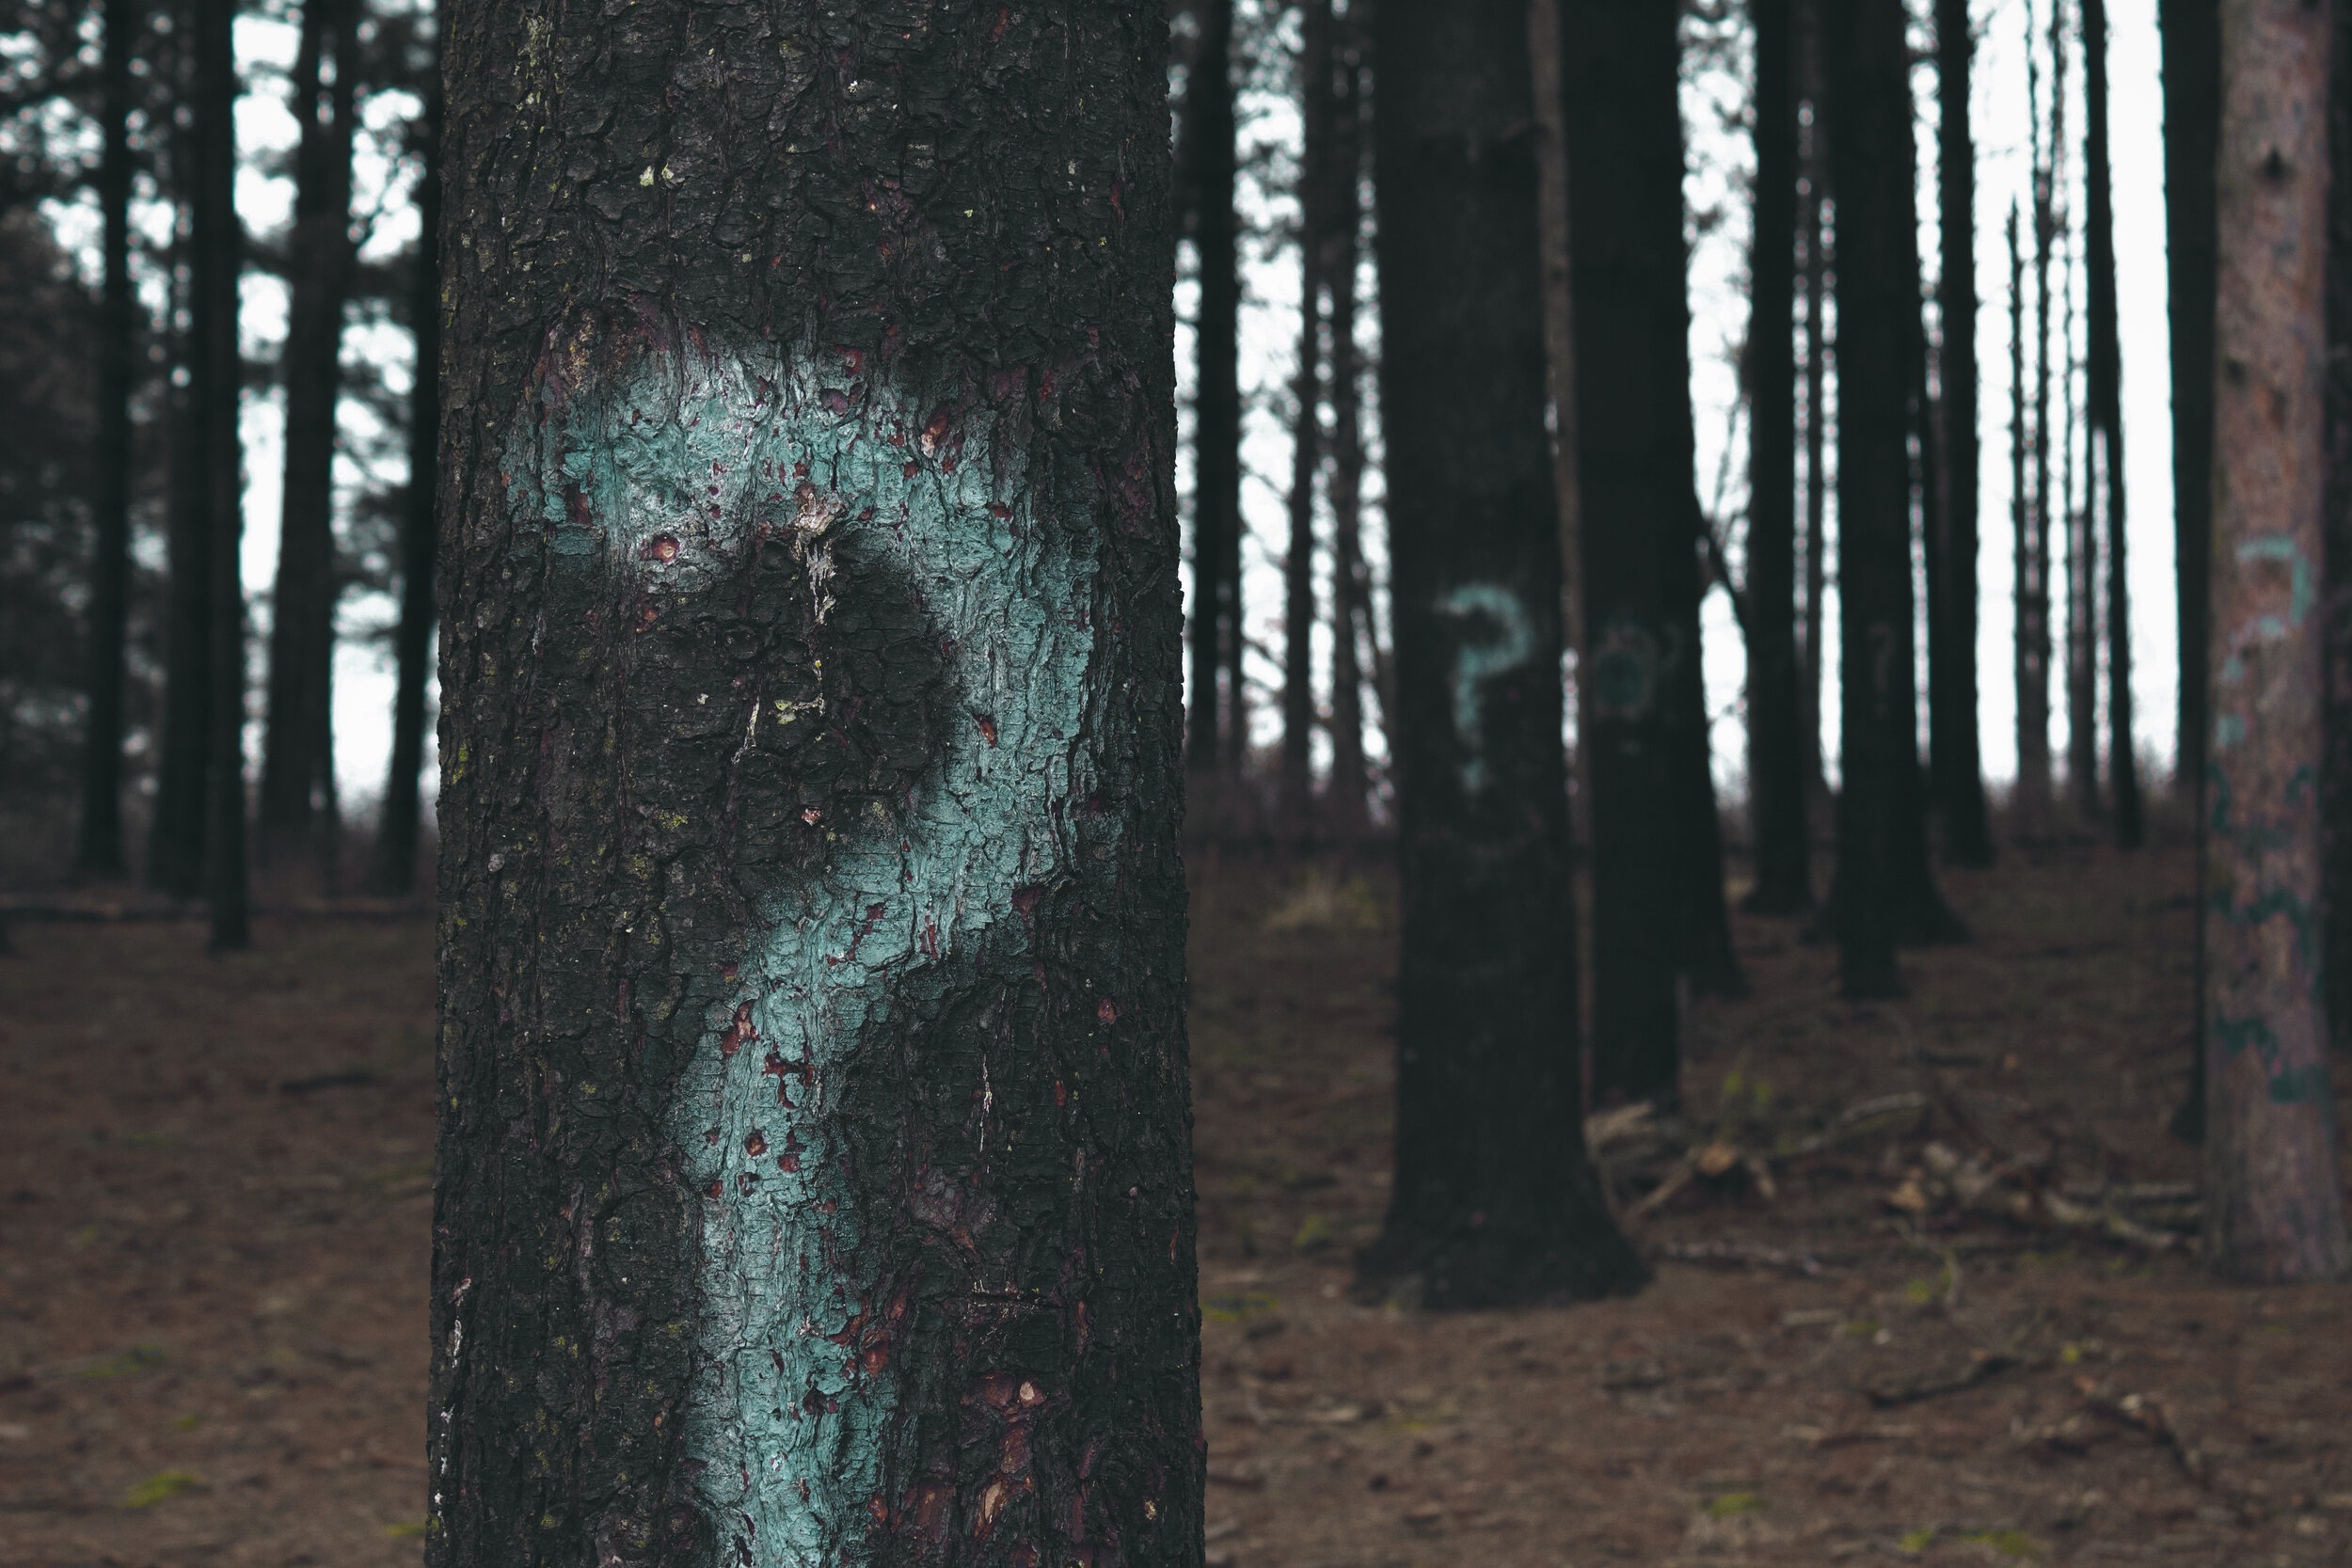 open forrest with trees and blue question marks